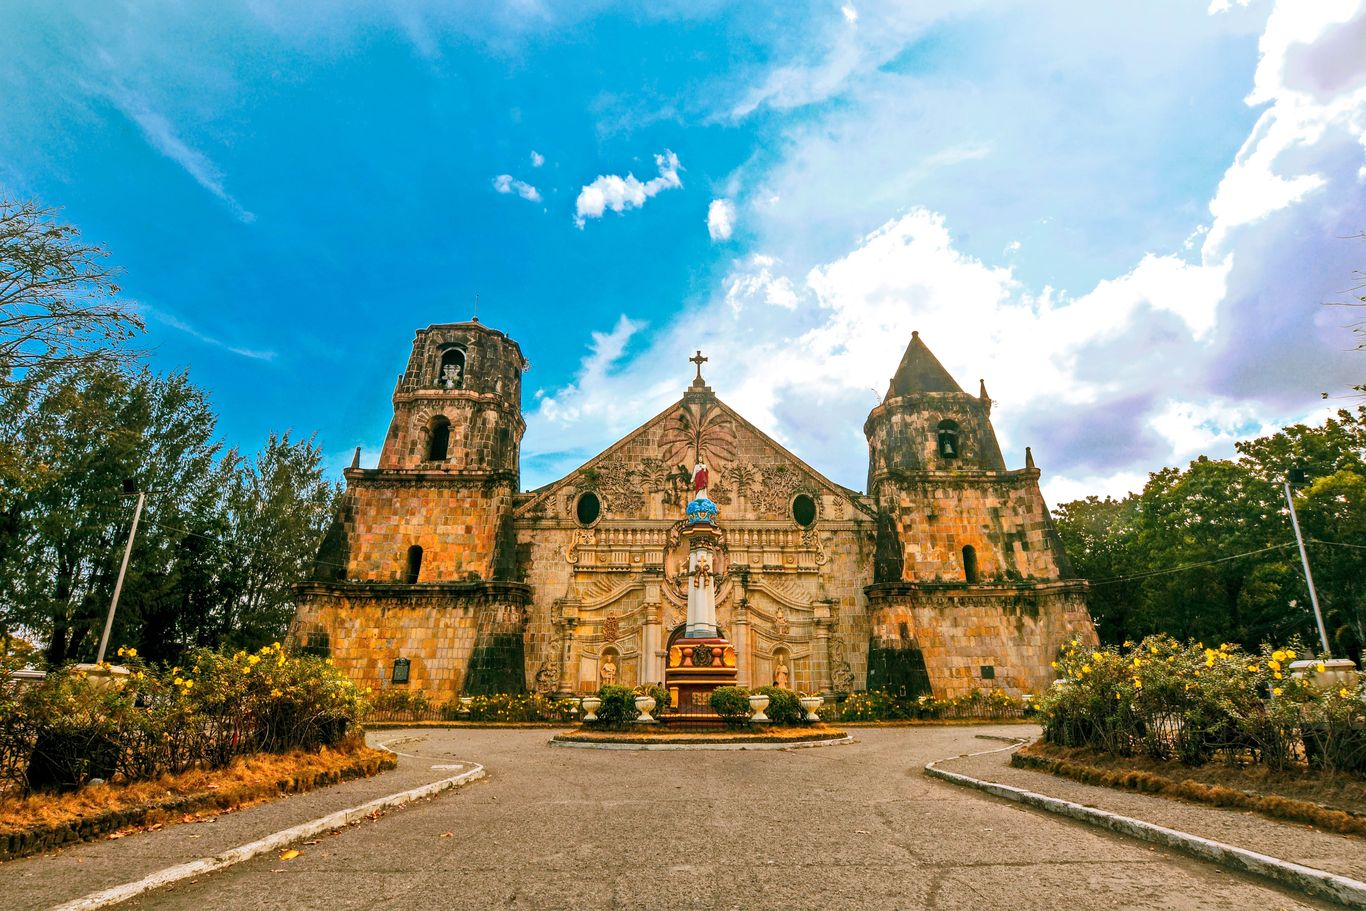 The facade and the two bell towers of the old stone church of Miagao, one of the UNESCO World Heritage Sites in the Philippines